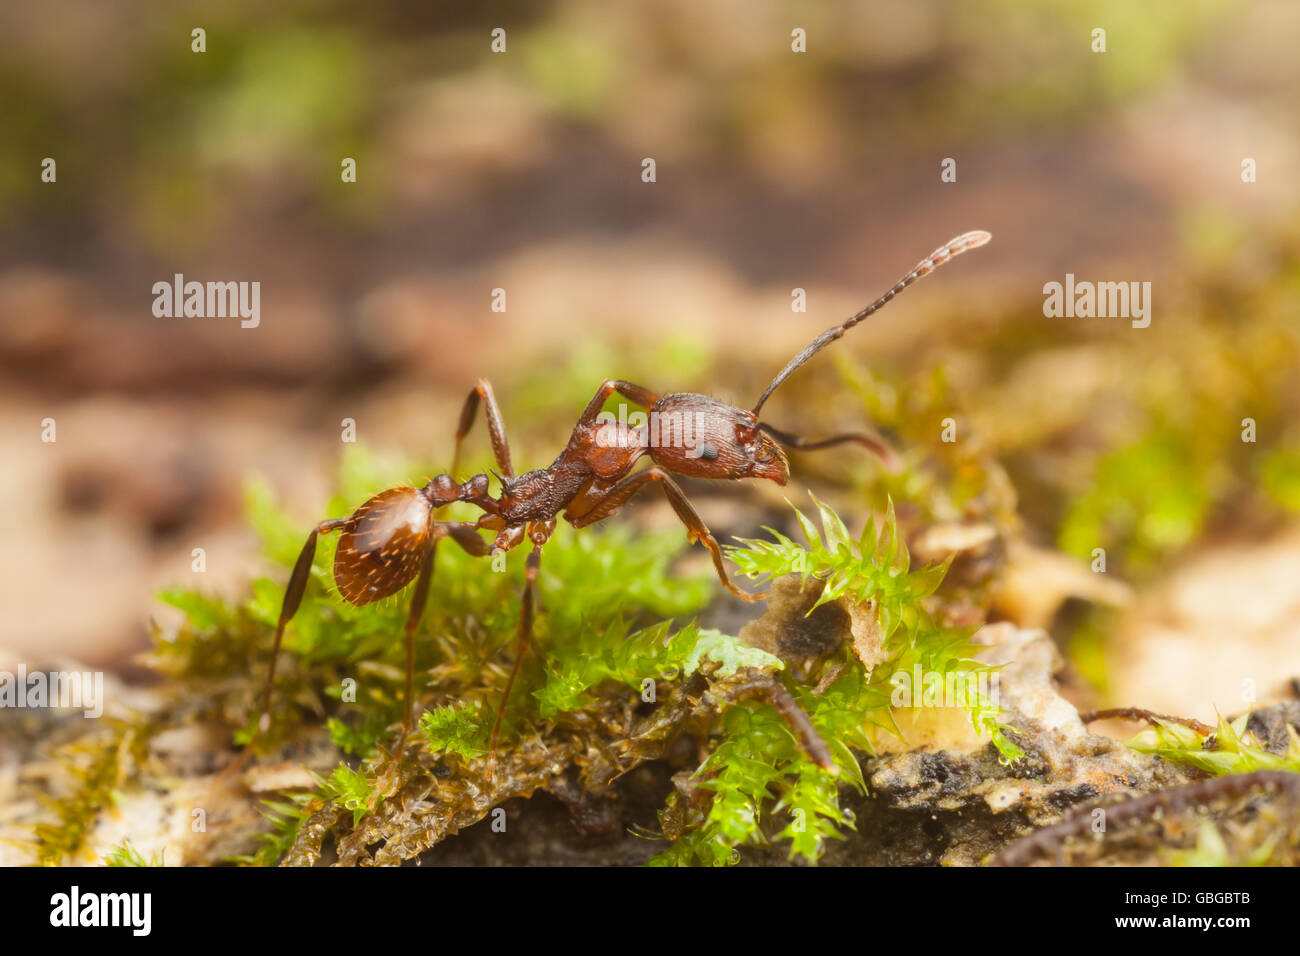 A Spine-waisted Ant (Aphaenogaster fulva) worker explores the surface of a fallen dead tree. - Stock Image